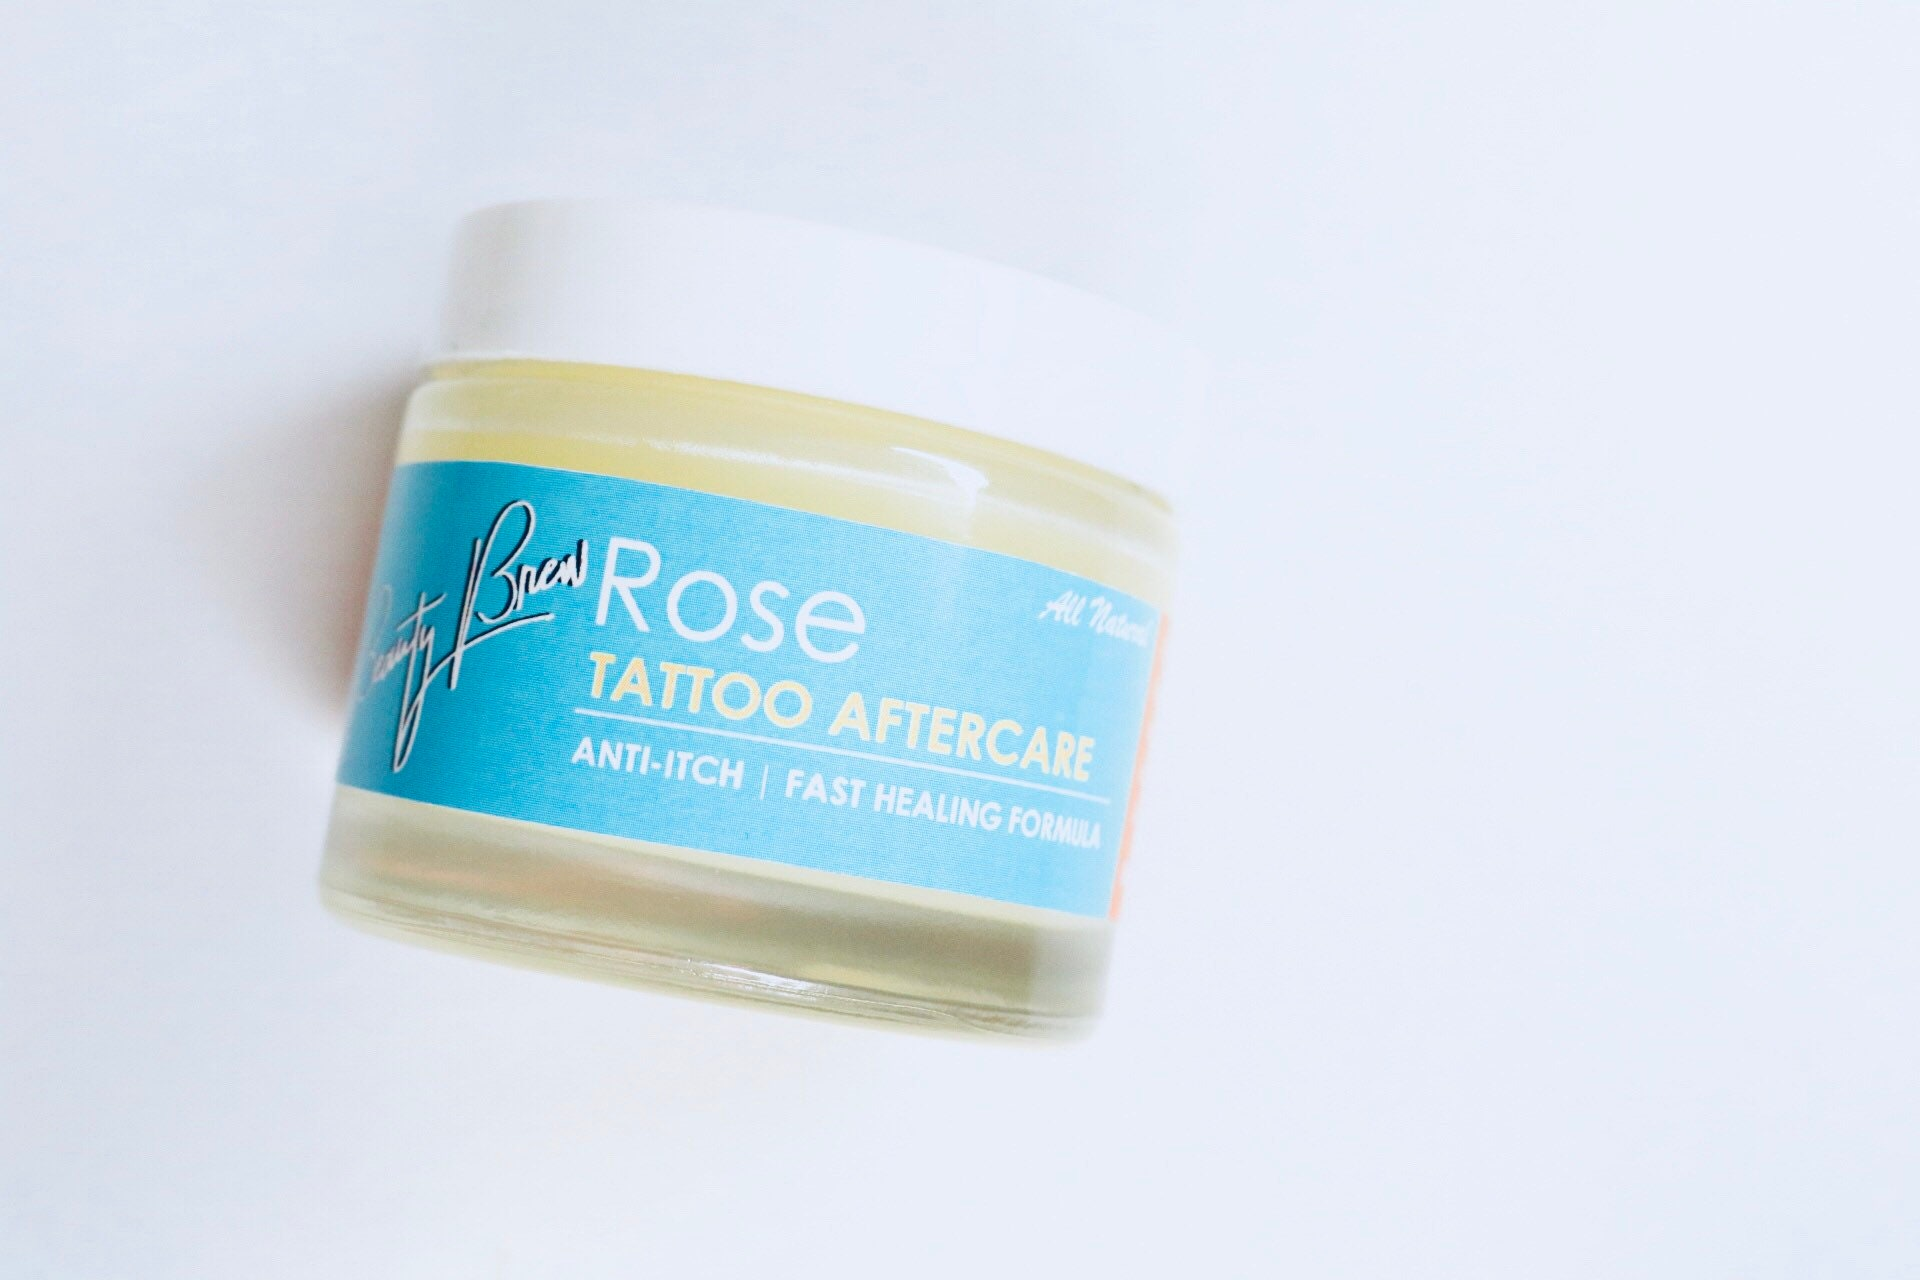 Tattoo Aftercare Balm W Rose Oil Anti Itch Fast Healing Etsy